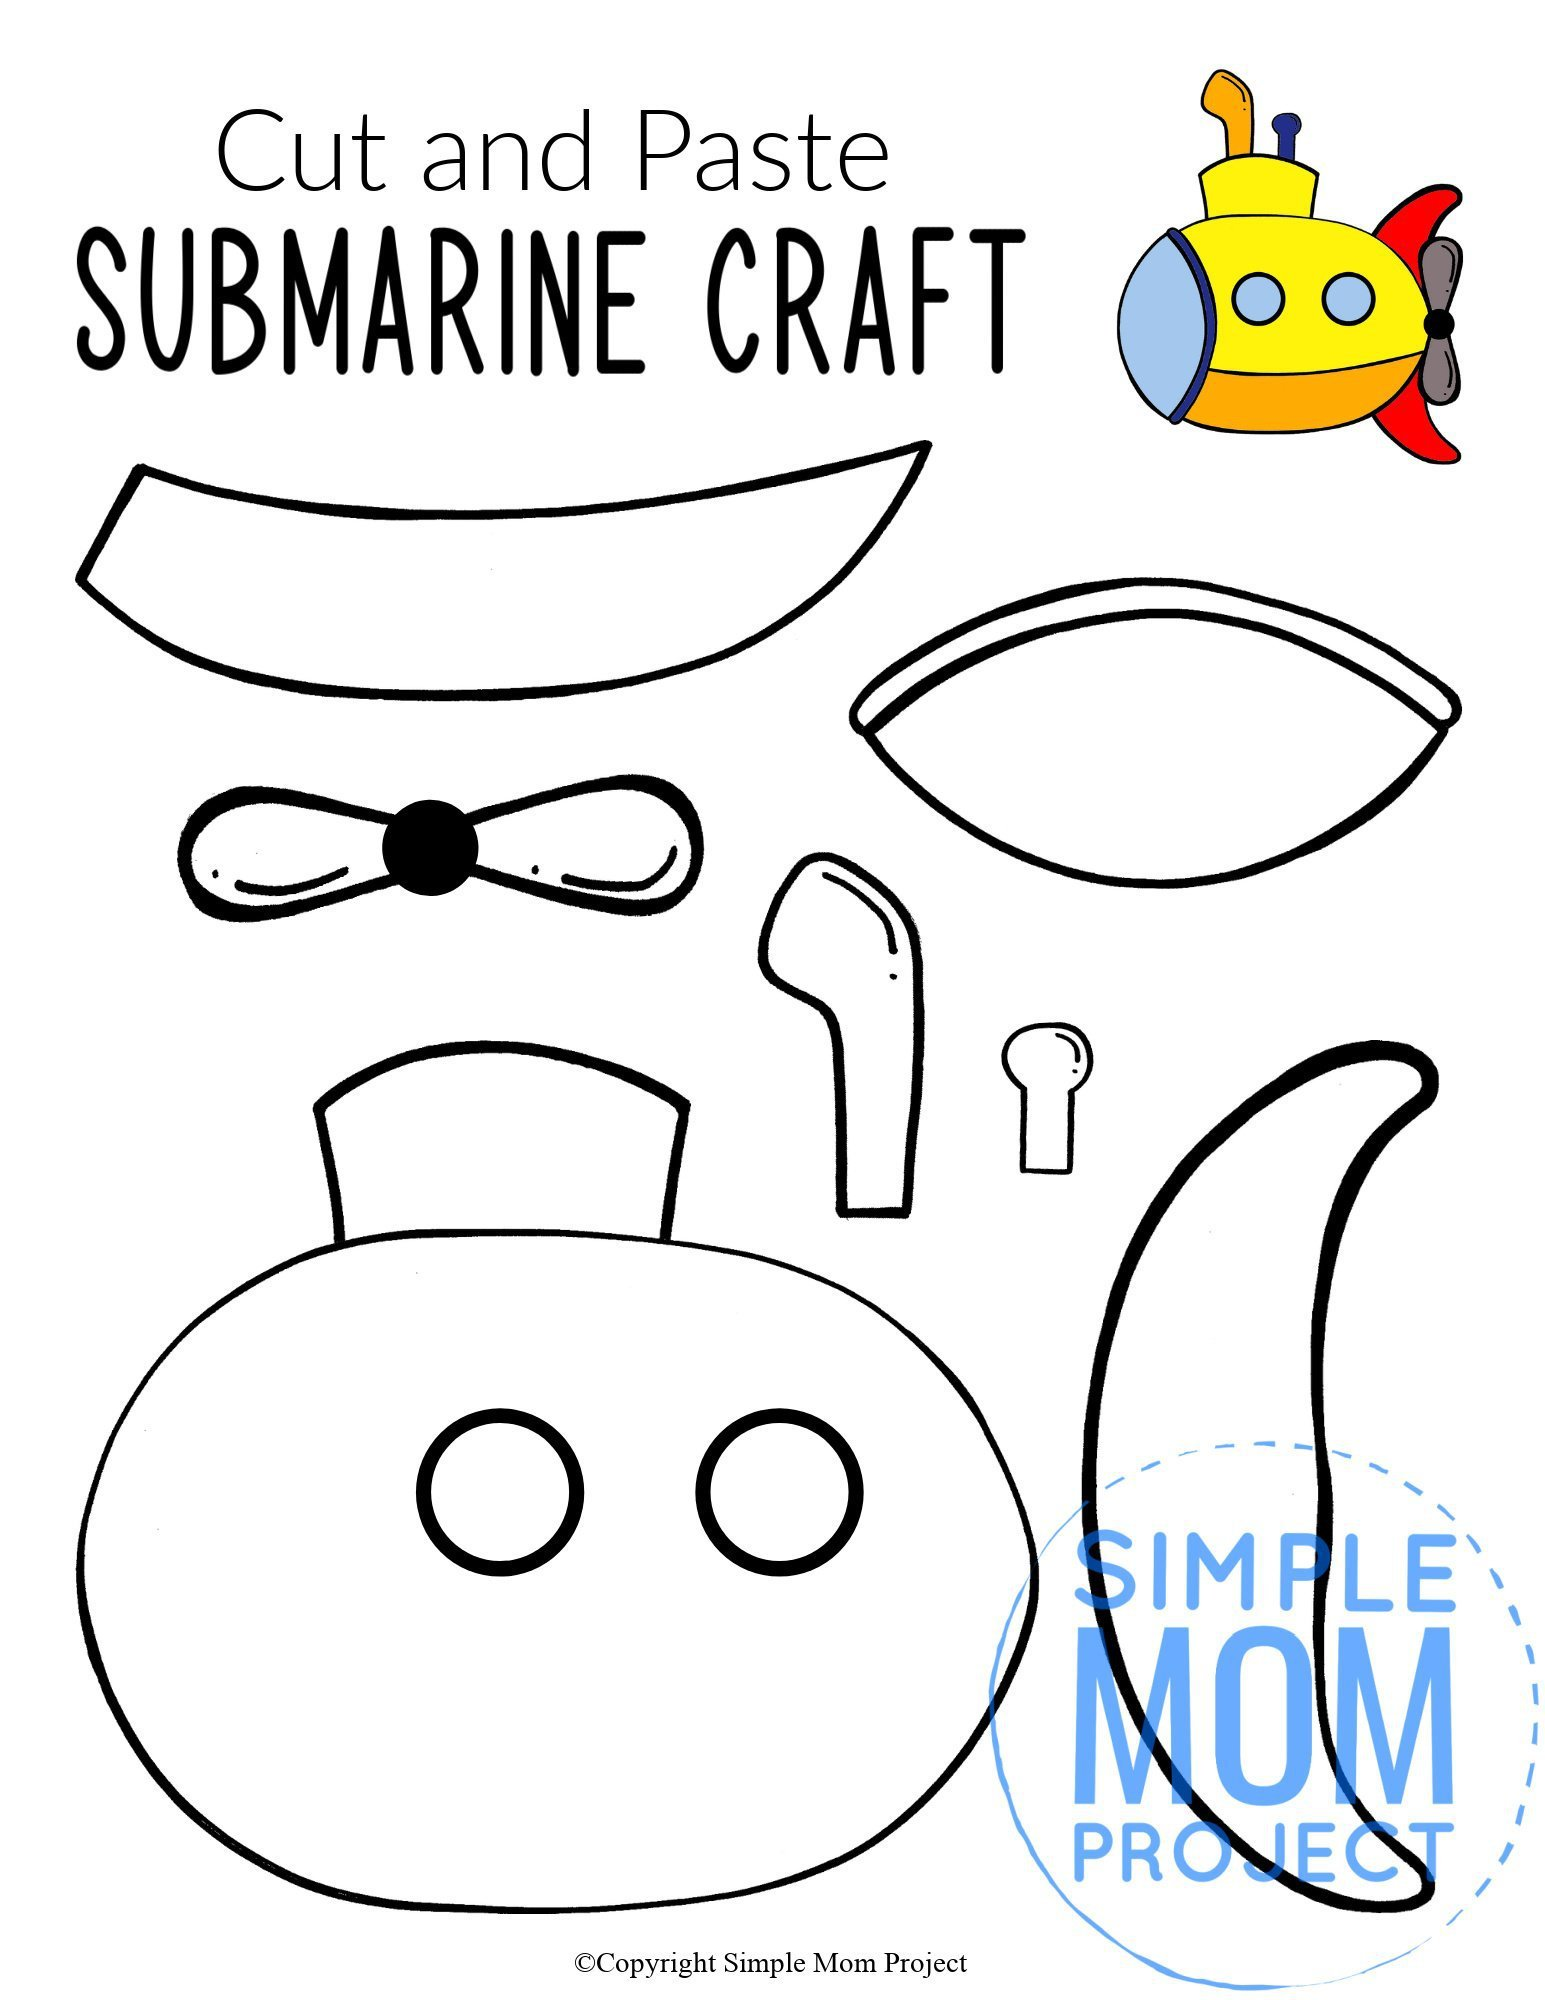 Free Printable Submarine Ocean Animal Craft for Kids, preschoolers and toddlers submarine template 3